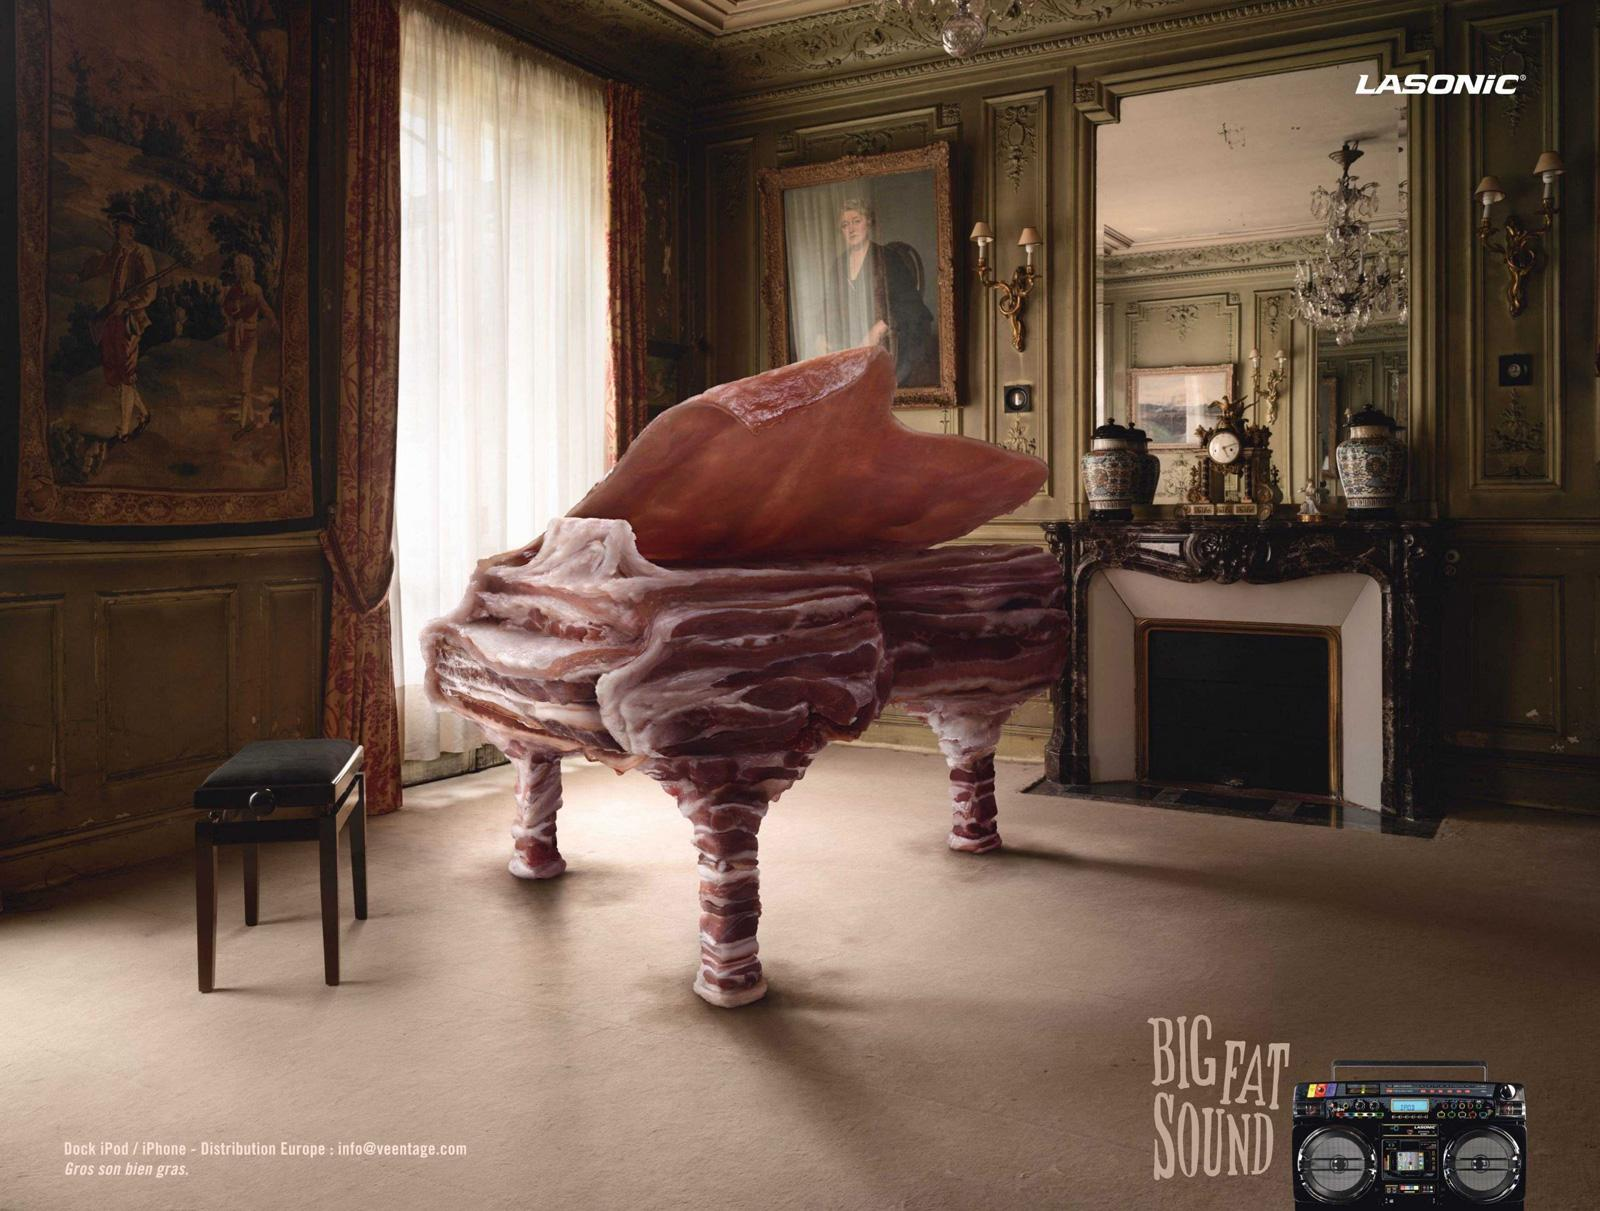 Lasonic Print Ad -  Big Fat Sound, Piano